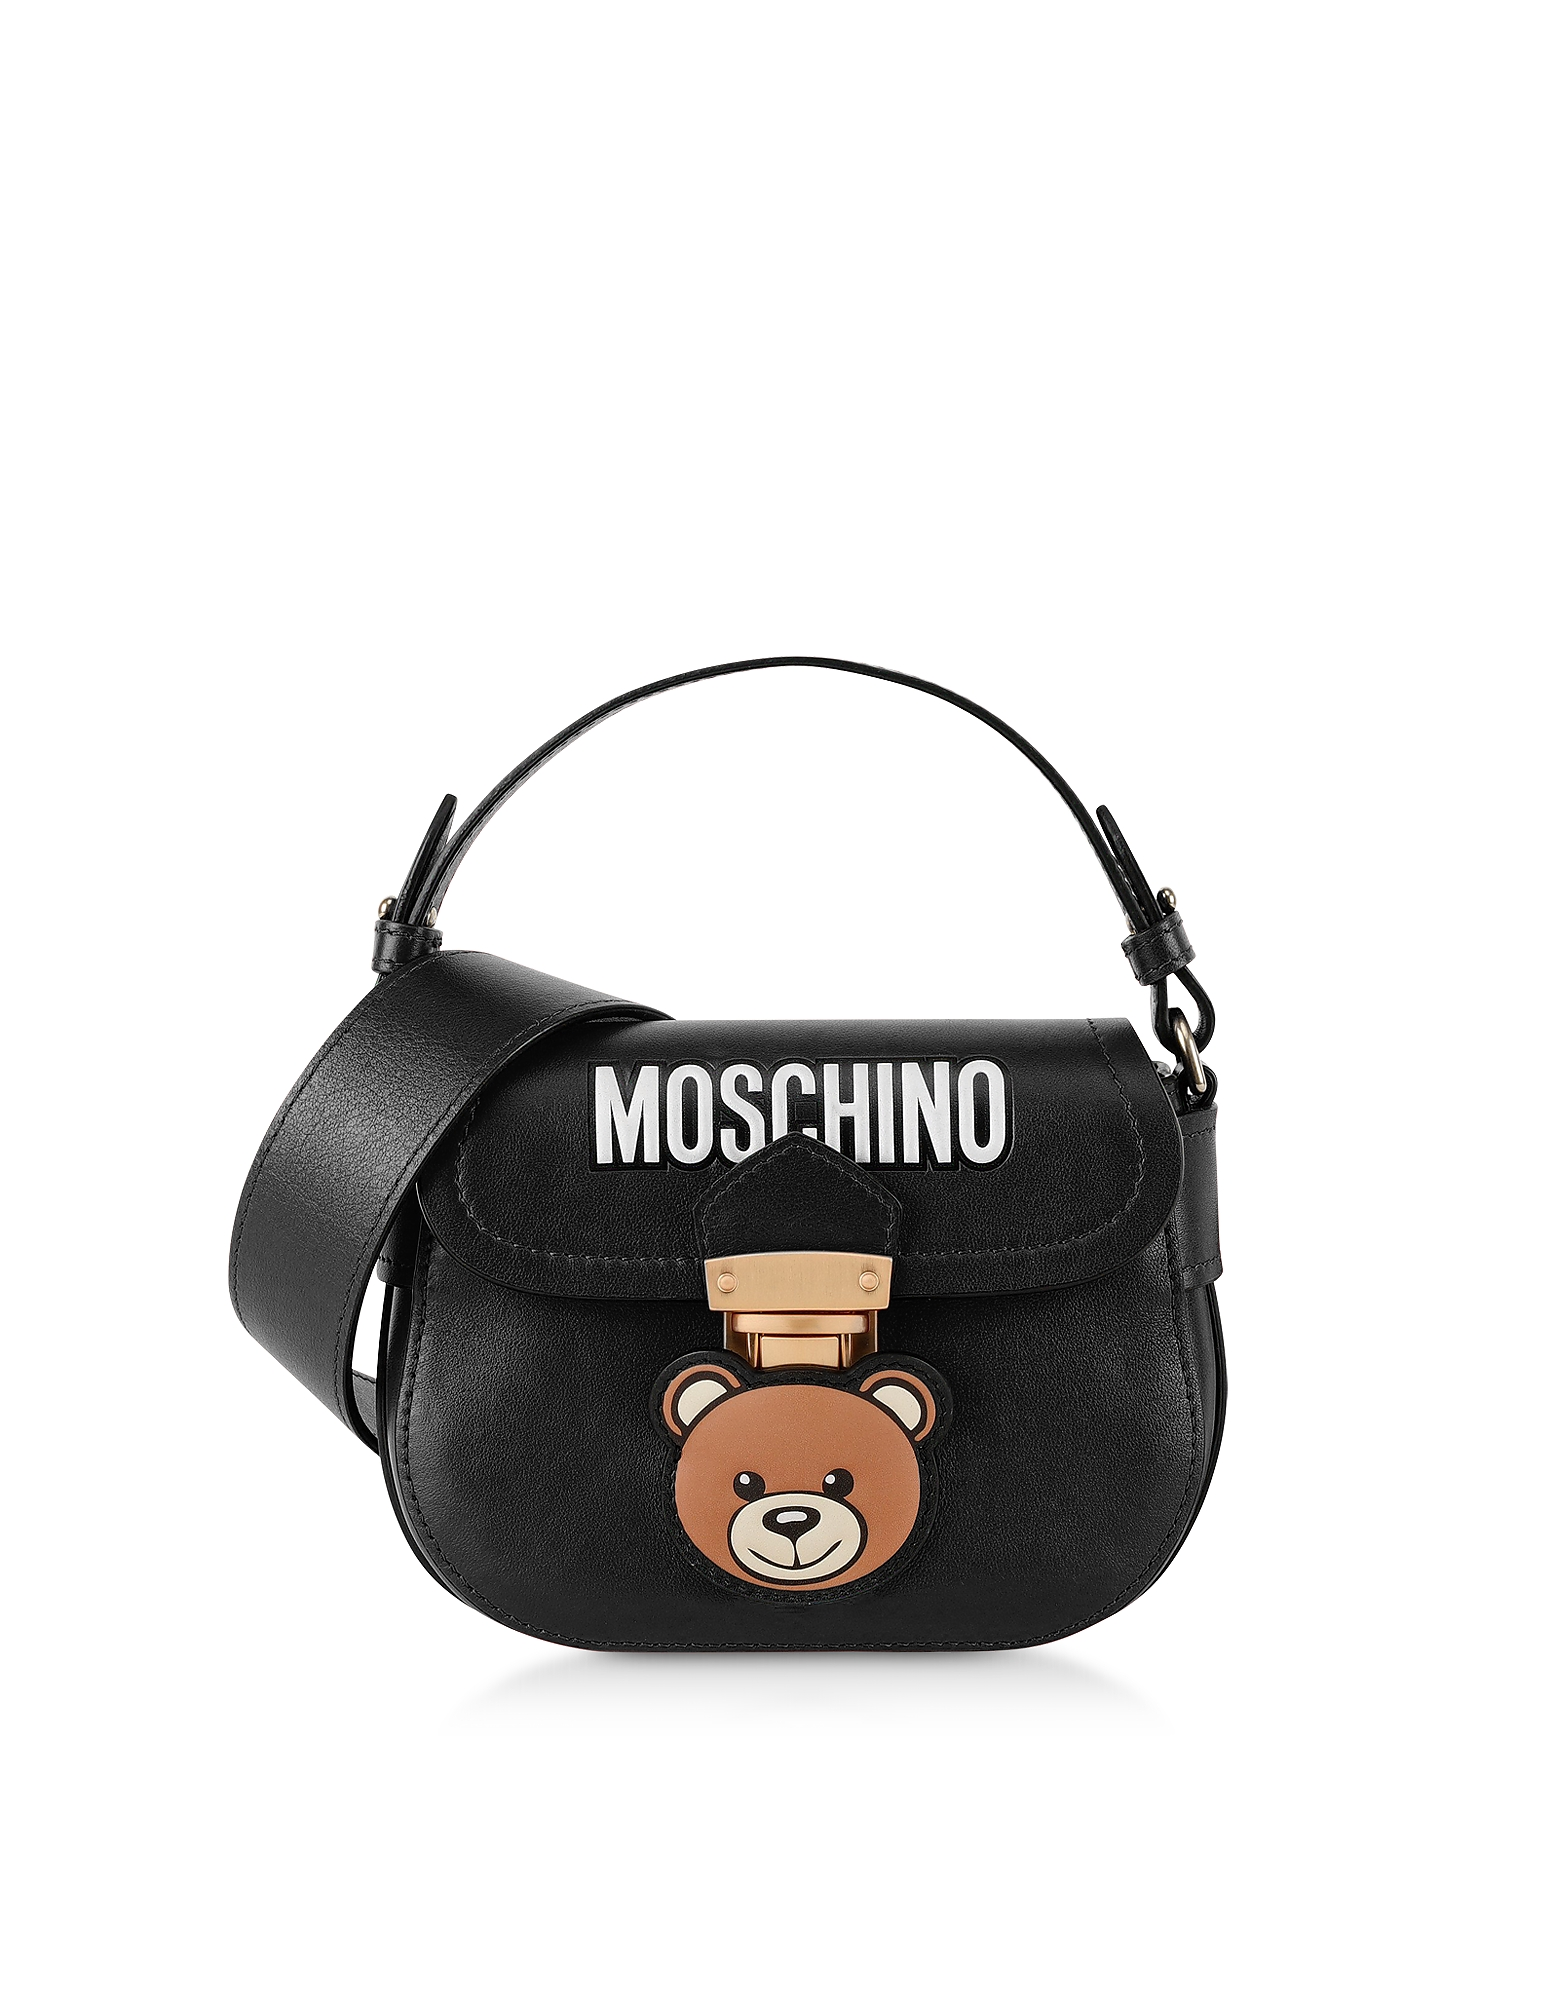 Moschino  Handbags Black Teddy Bear Top Handle Shoulder Bag